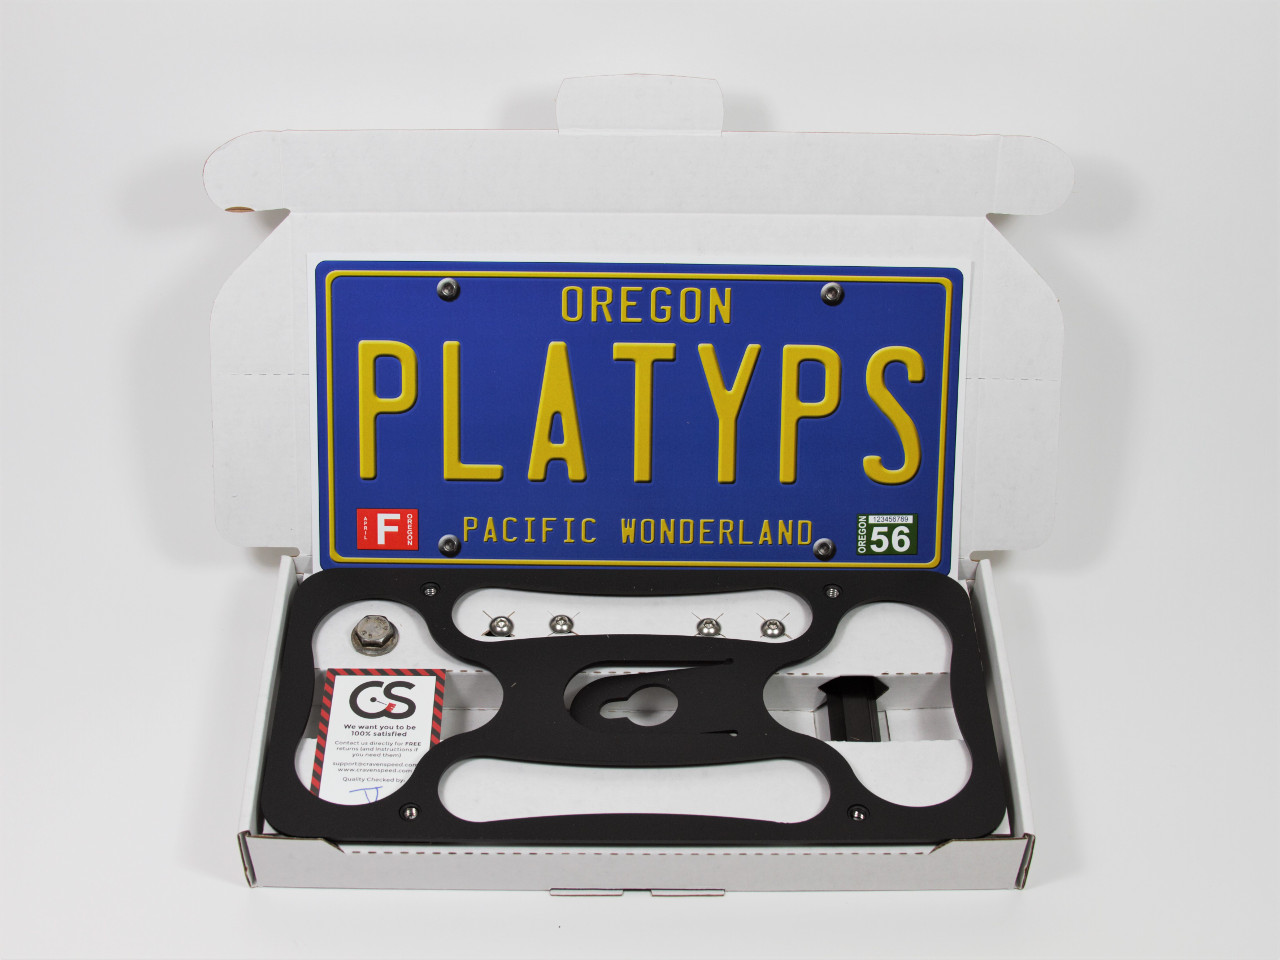 Assembled kit of The Platypus License Plate Mount for 2006 BMW 325i Sedan and Wagon